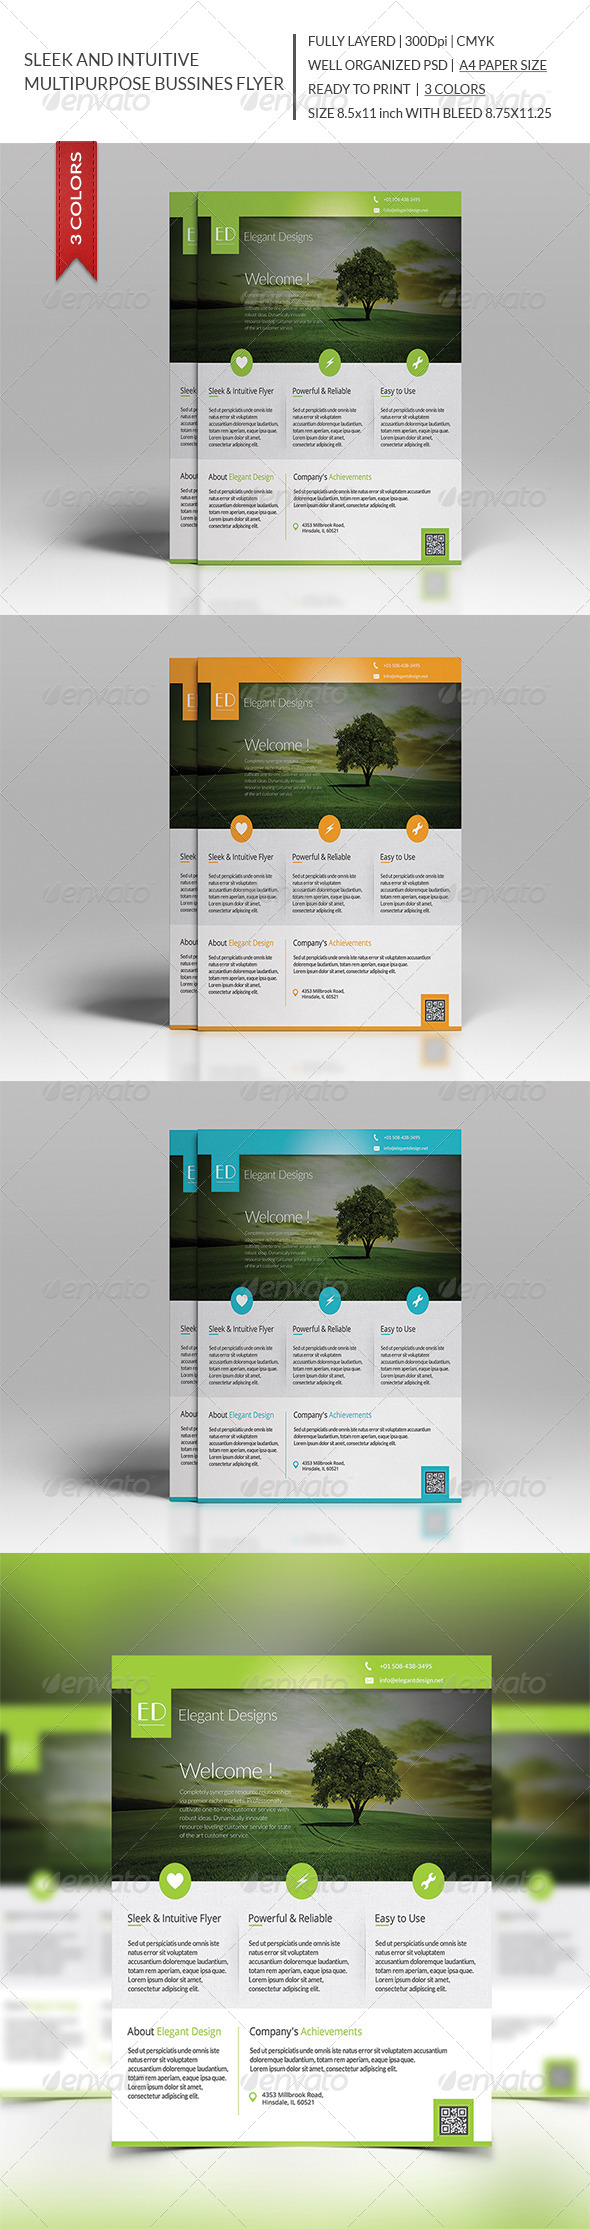 GraphicRiver Sleek and Intuitive Multipurpose Business Flyer 8325356